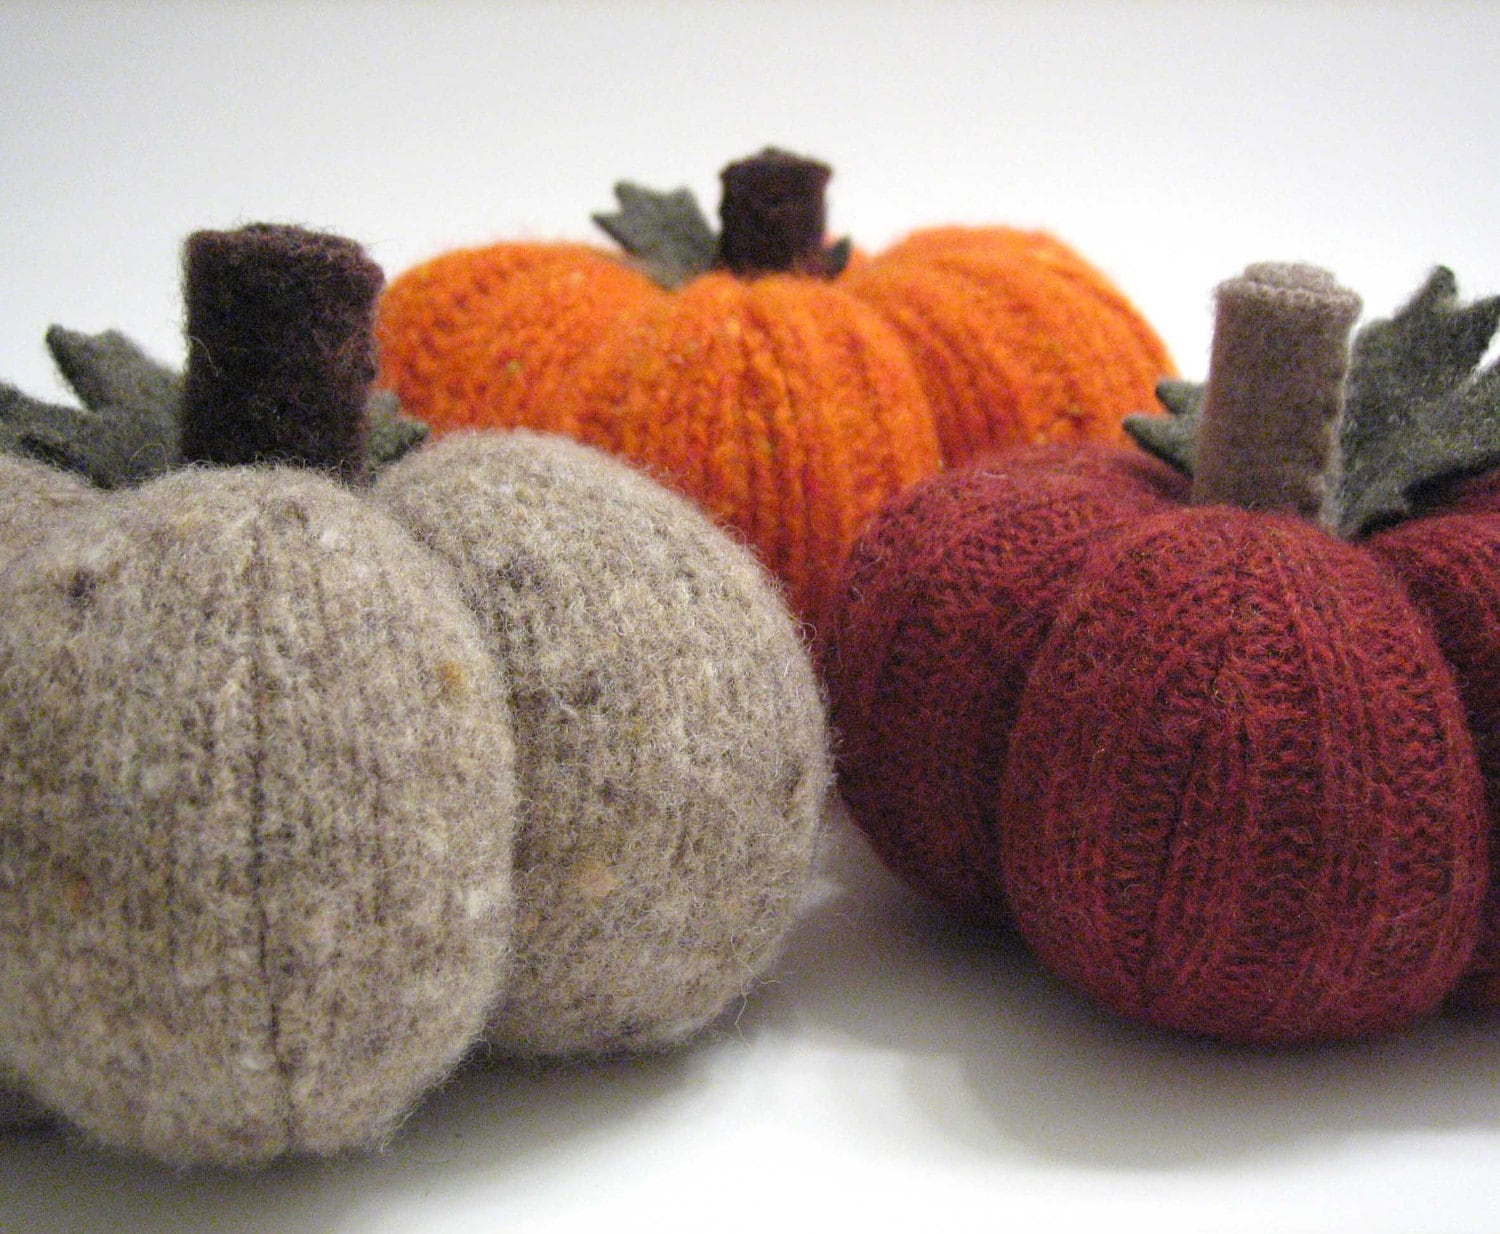 Three Autumn Pumpkins Handmade from Felted Wool - Collection No. 15